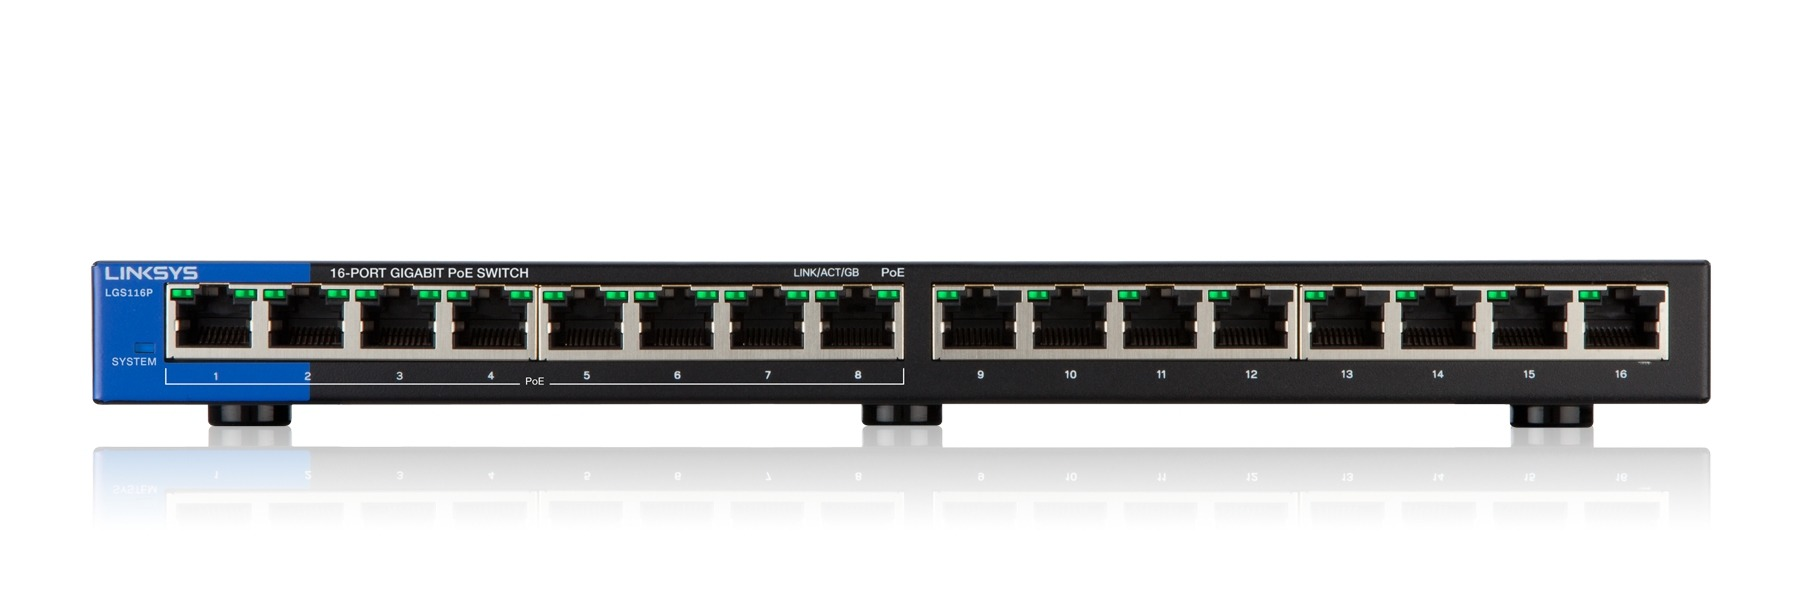 Linksys LGS116P-EU Switch